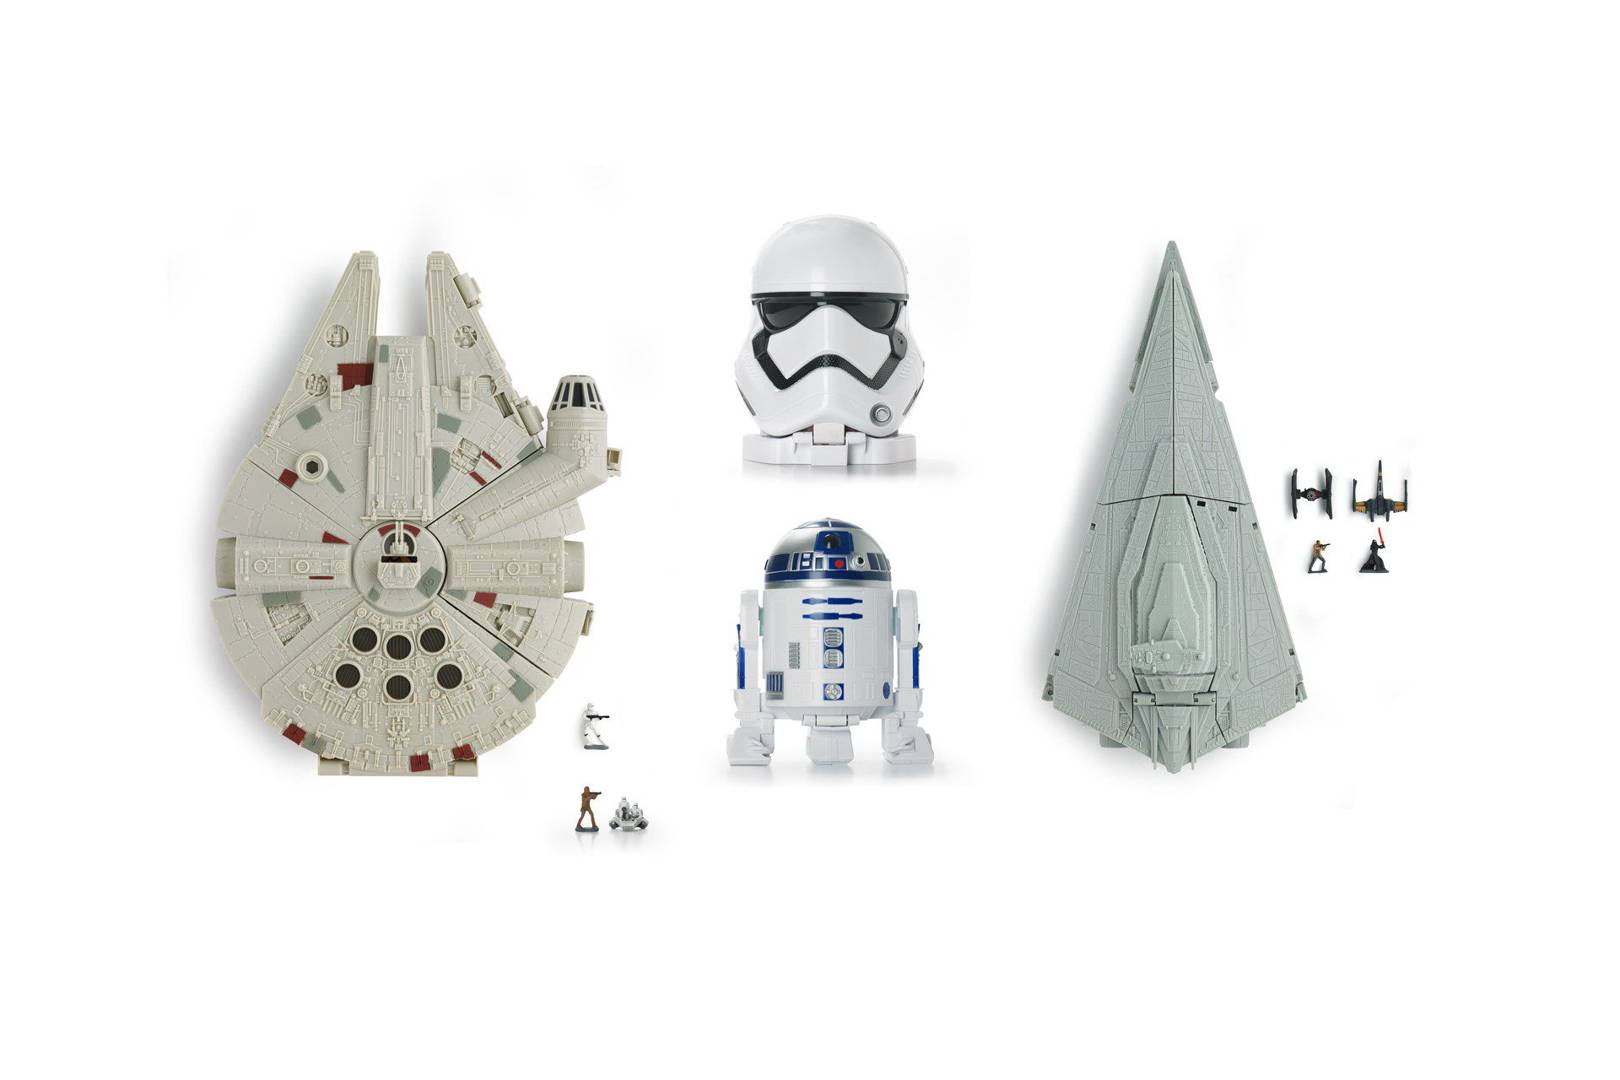 b502952c1 Star Wars: The Force Awakens toys: figures, lightsabers, guns and more |  WIRED UK